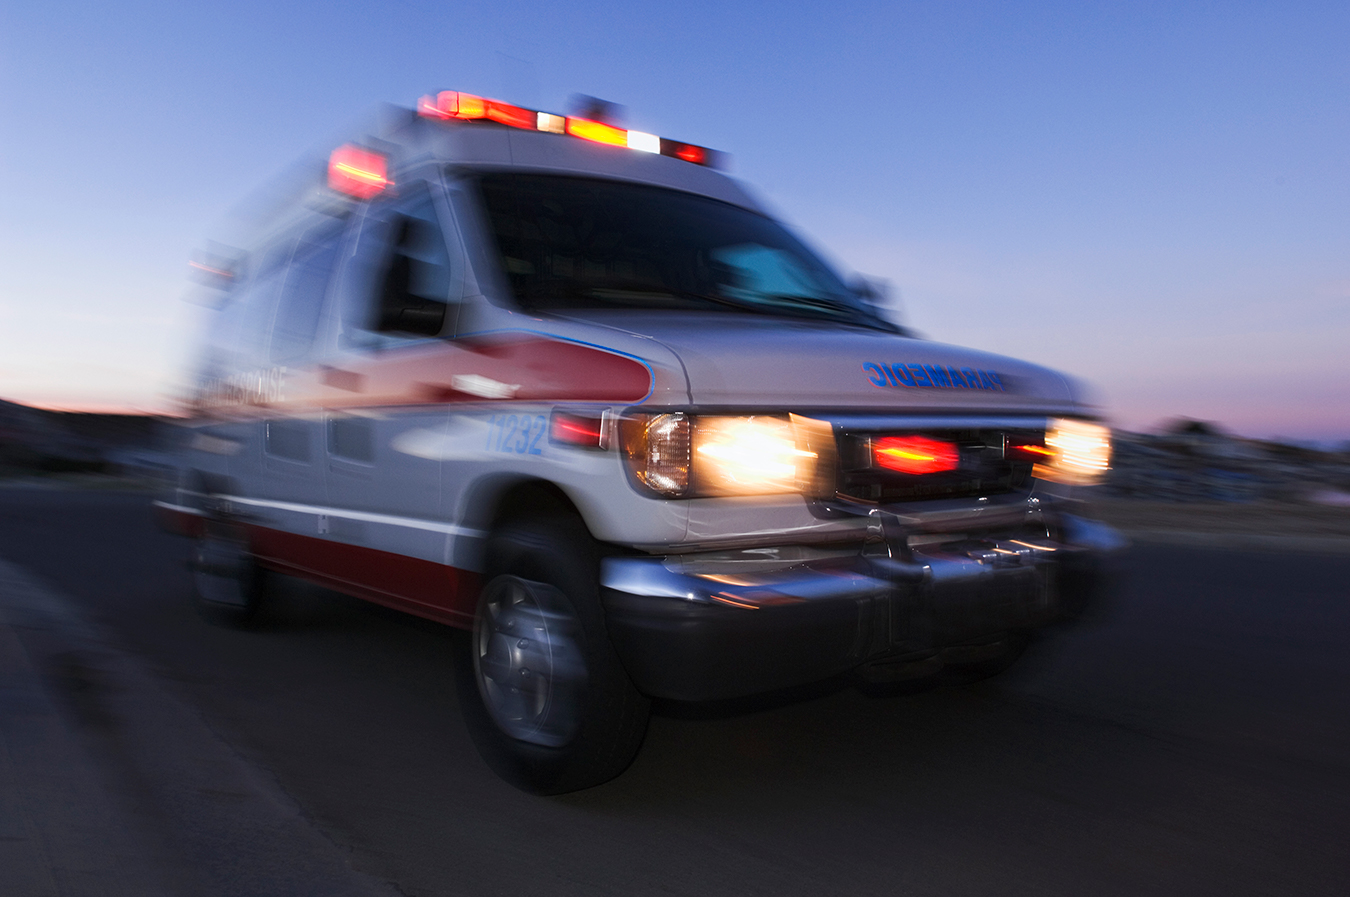 One Ambulance Ride Leads to Another When Packed Hospitals Cannot Handle Non-Covid Patients